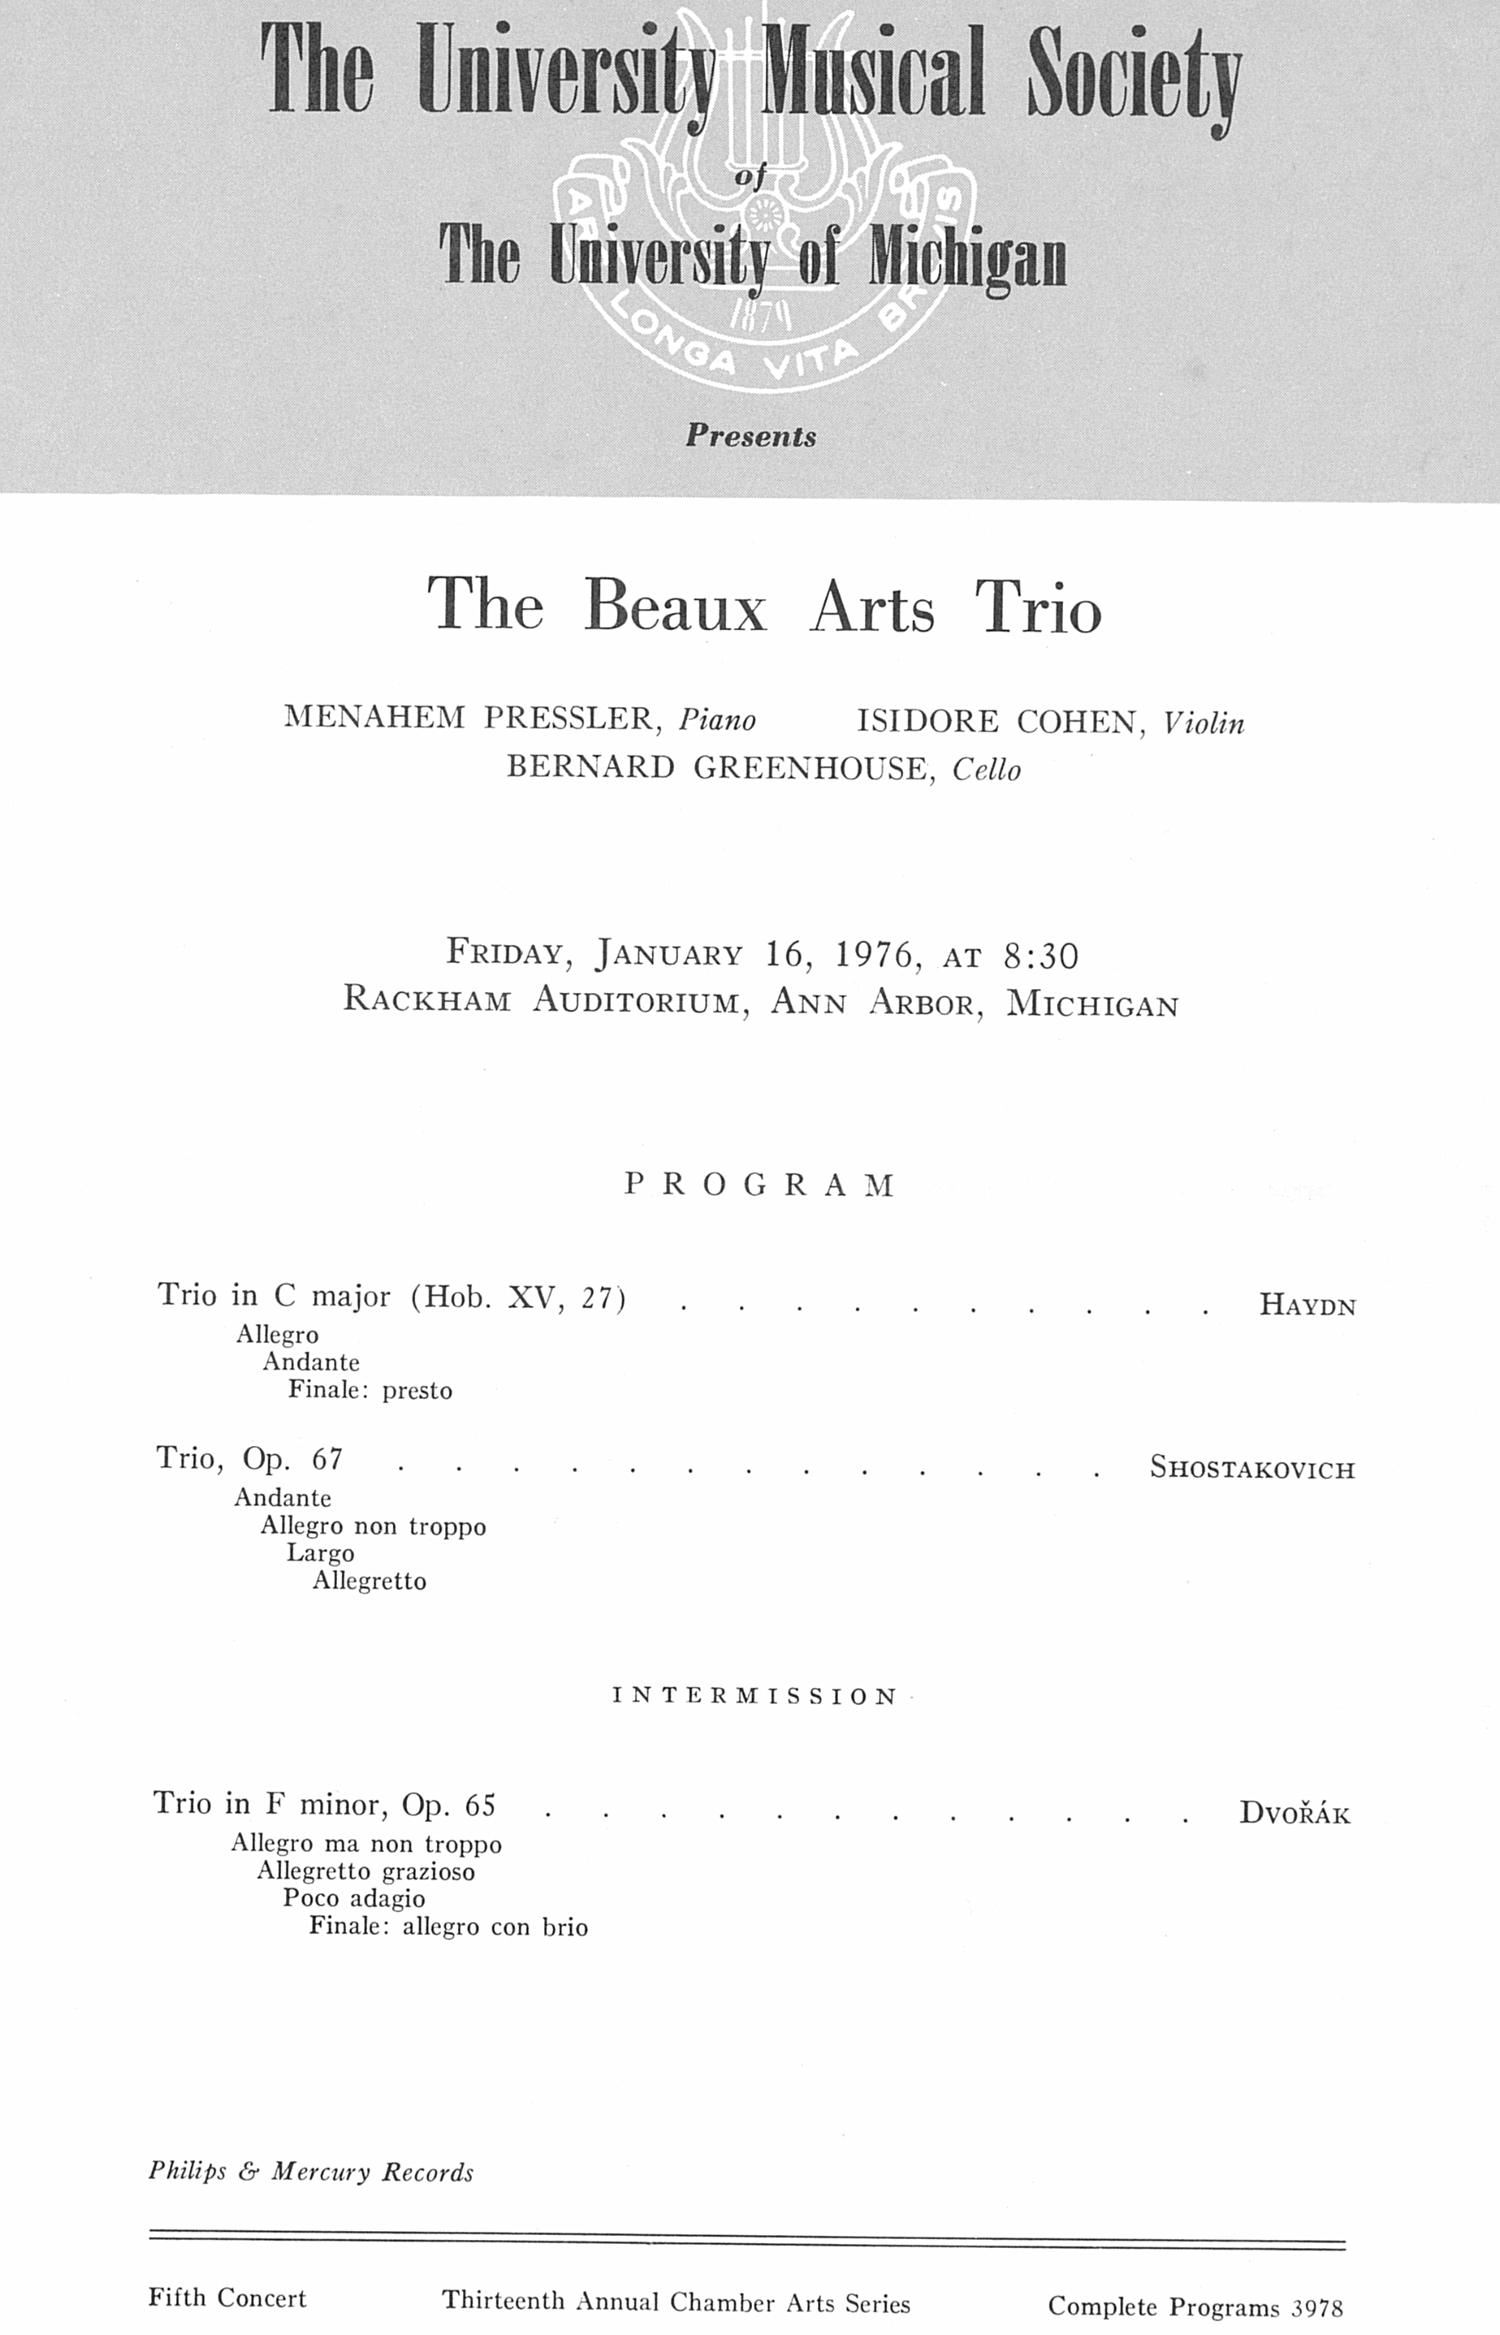 UMS Concert Program, January 16, 1976: The Beaux Arts Trio --  image